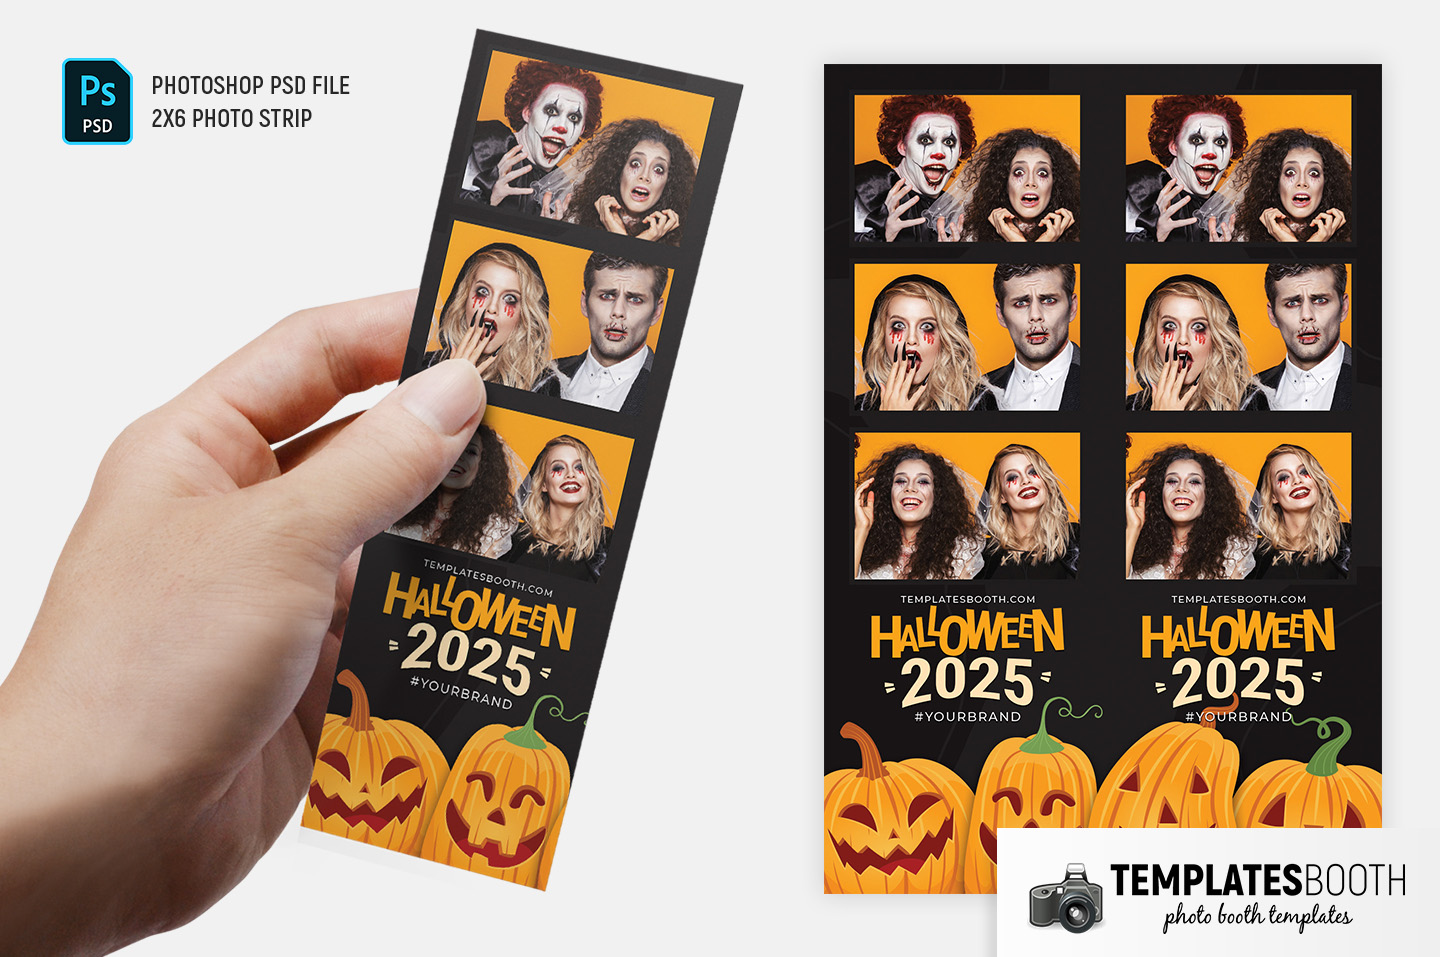 Halloween Photo Booth Template (2x6 Photo Strip)